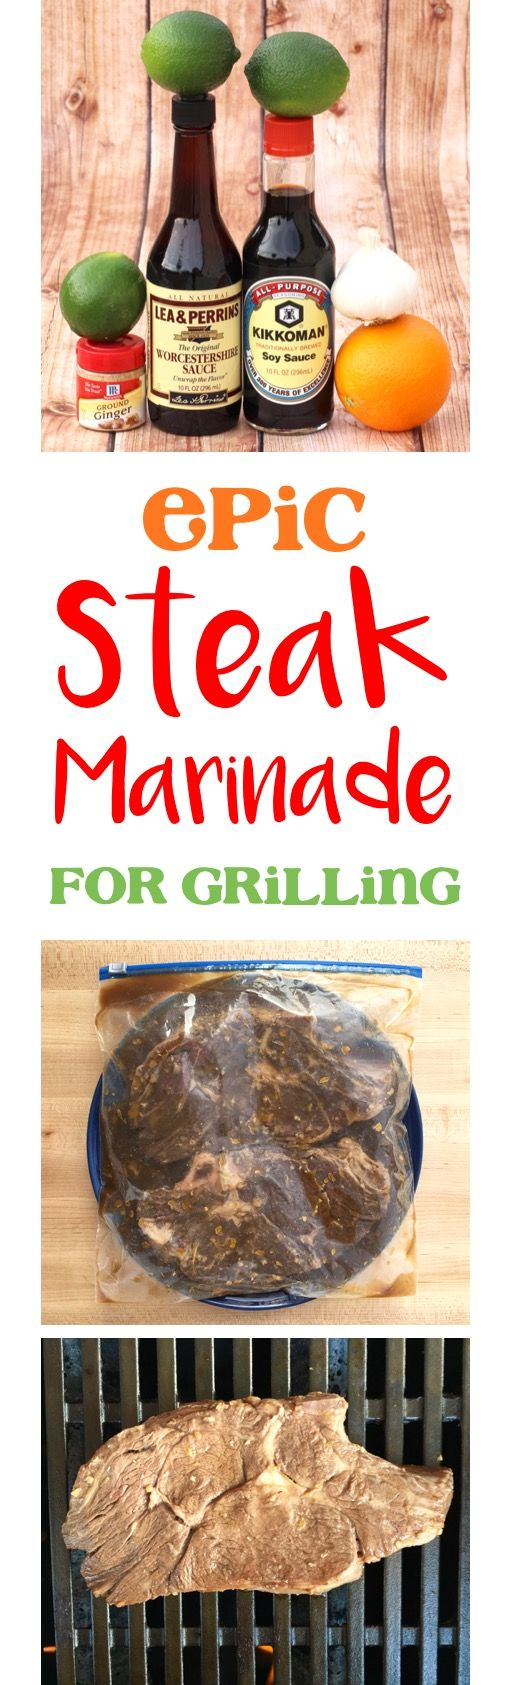 Steak Marinade Recipes!  This easy marinade makes the BEST steak ever... go fire up the grill and get ready for epic flavor! | TheFrugalGirls.com